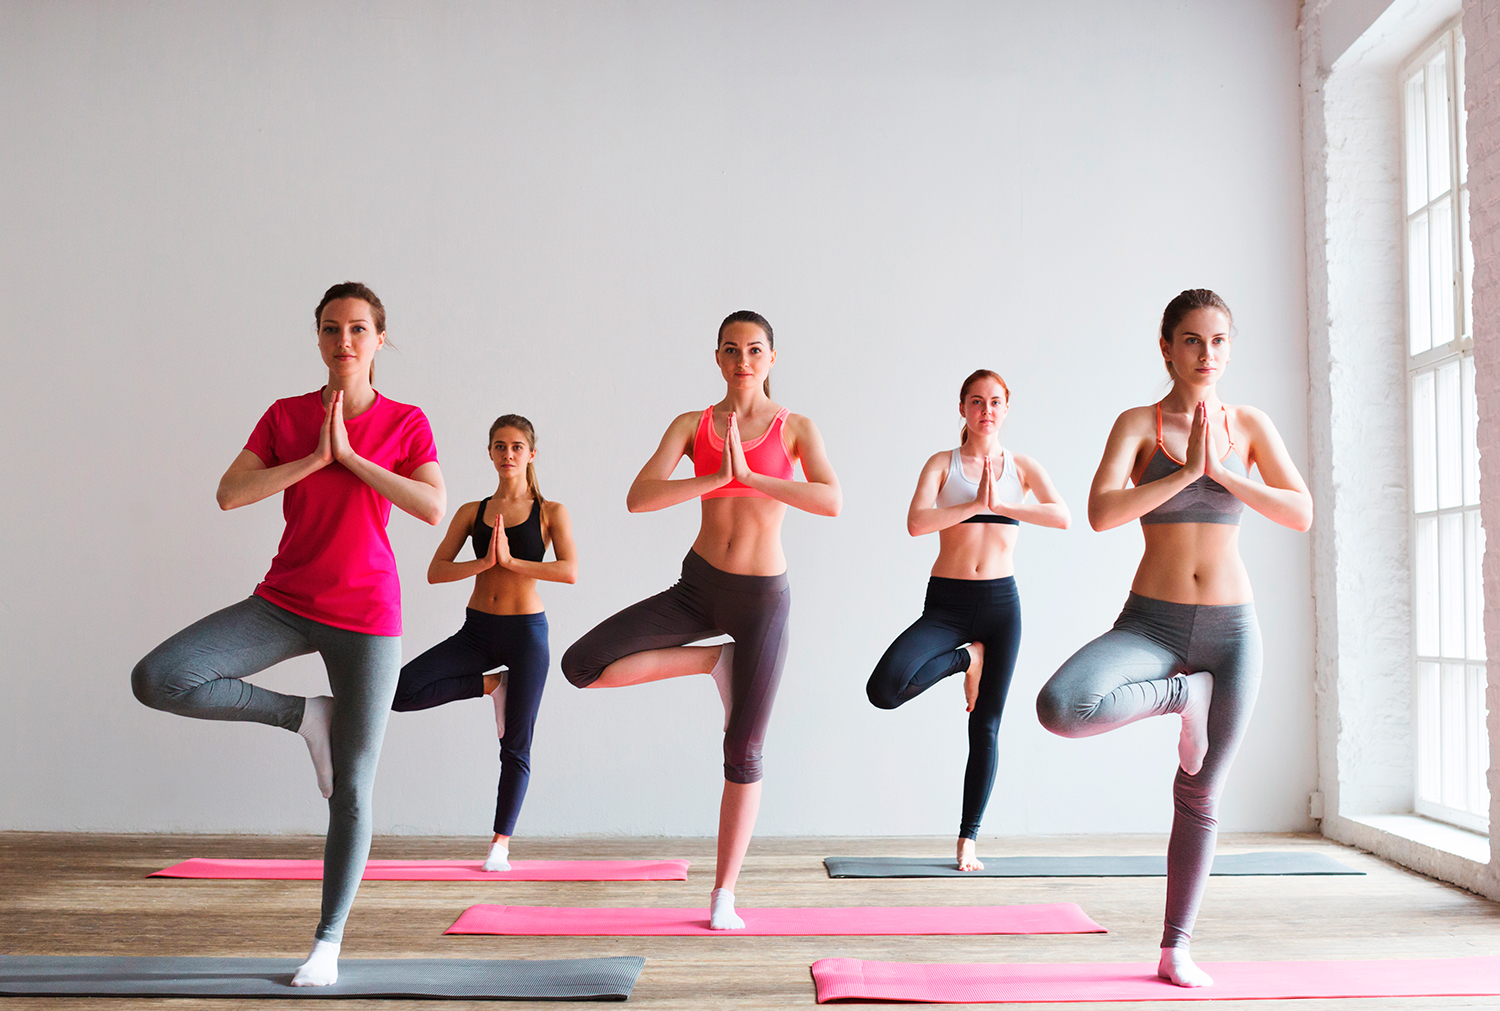 15 Yoga Classes with Meditations - YOGA PRACTICE